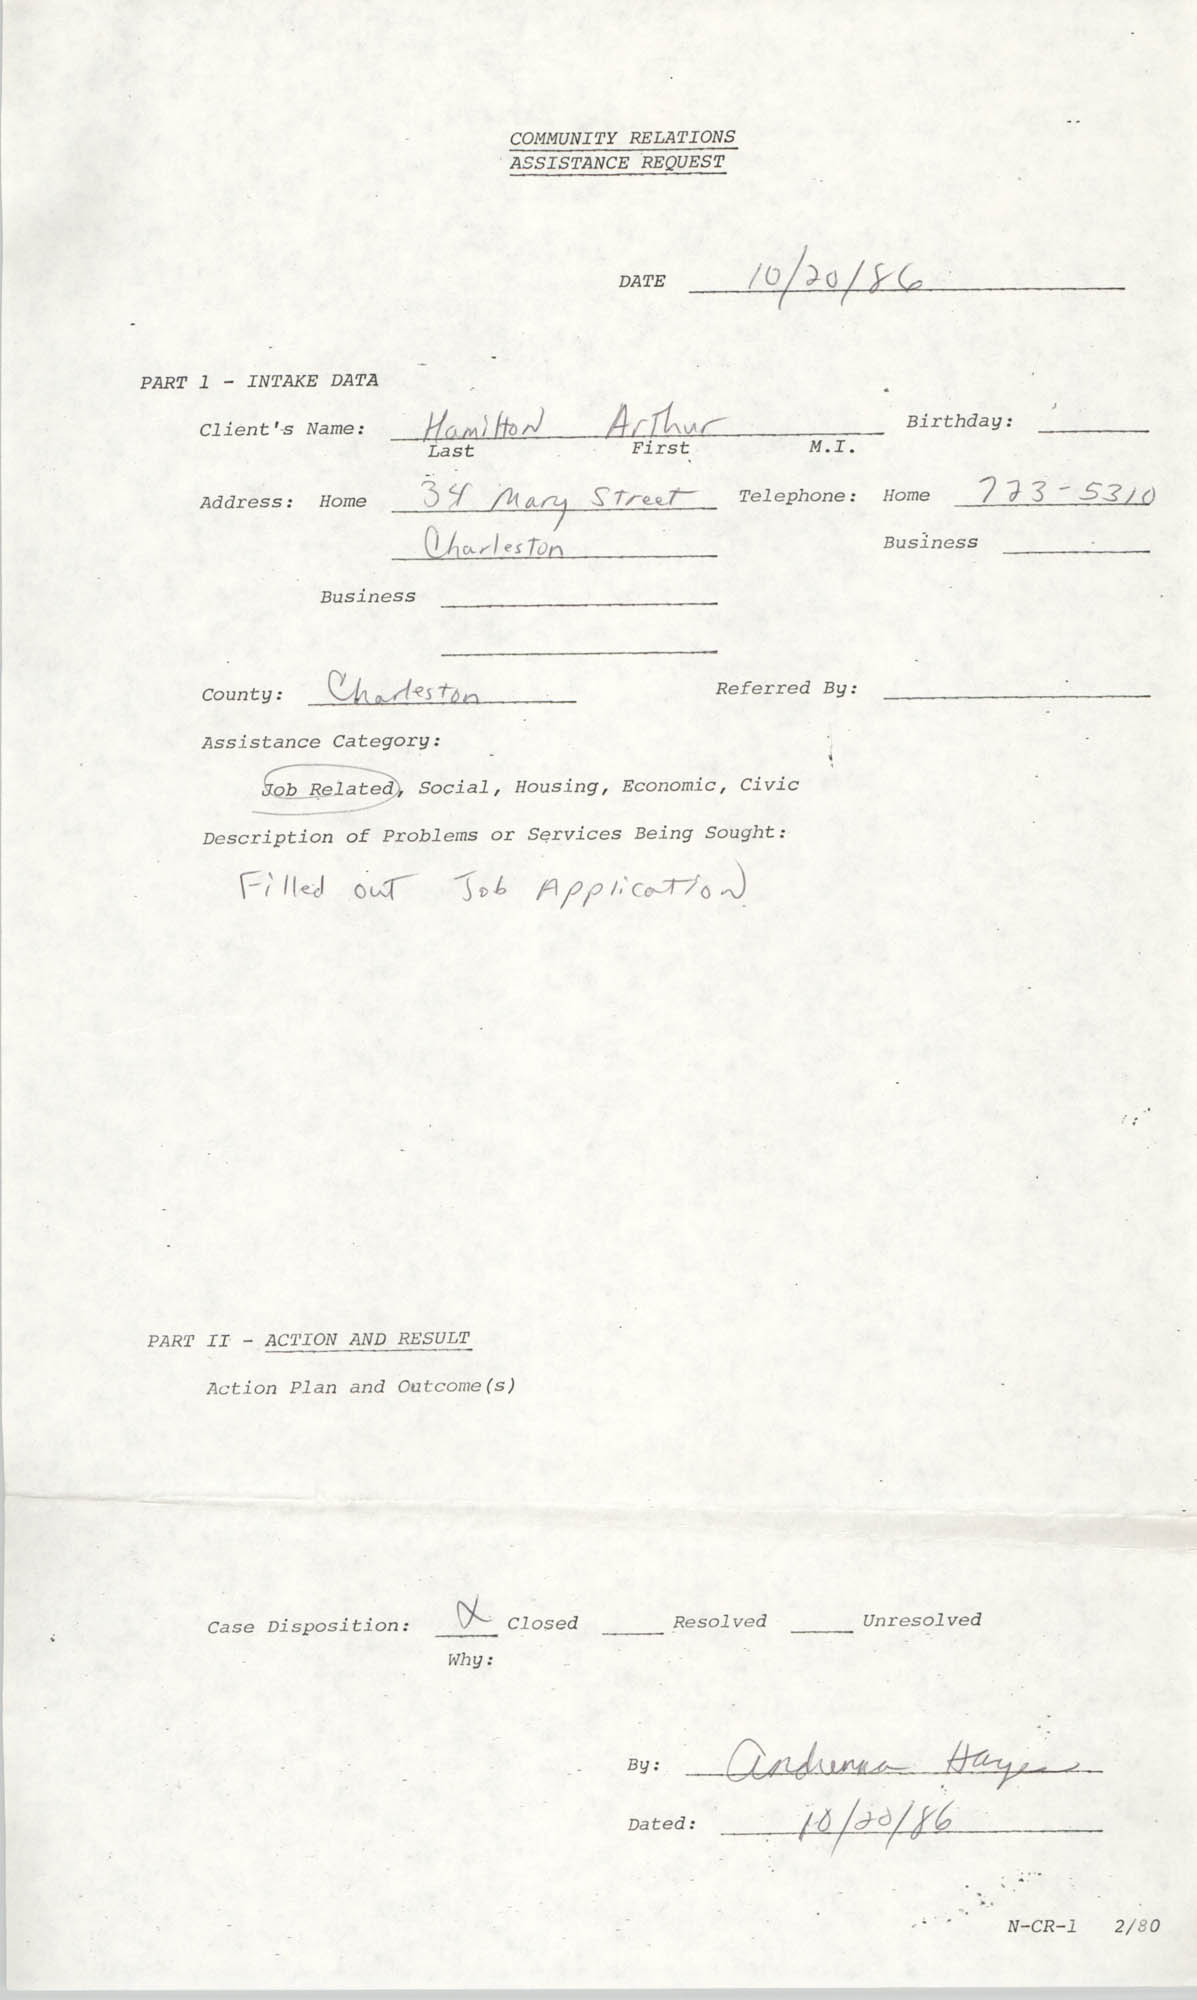 Community Relations Assistance Request, October 20, 1986